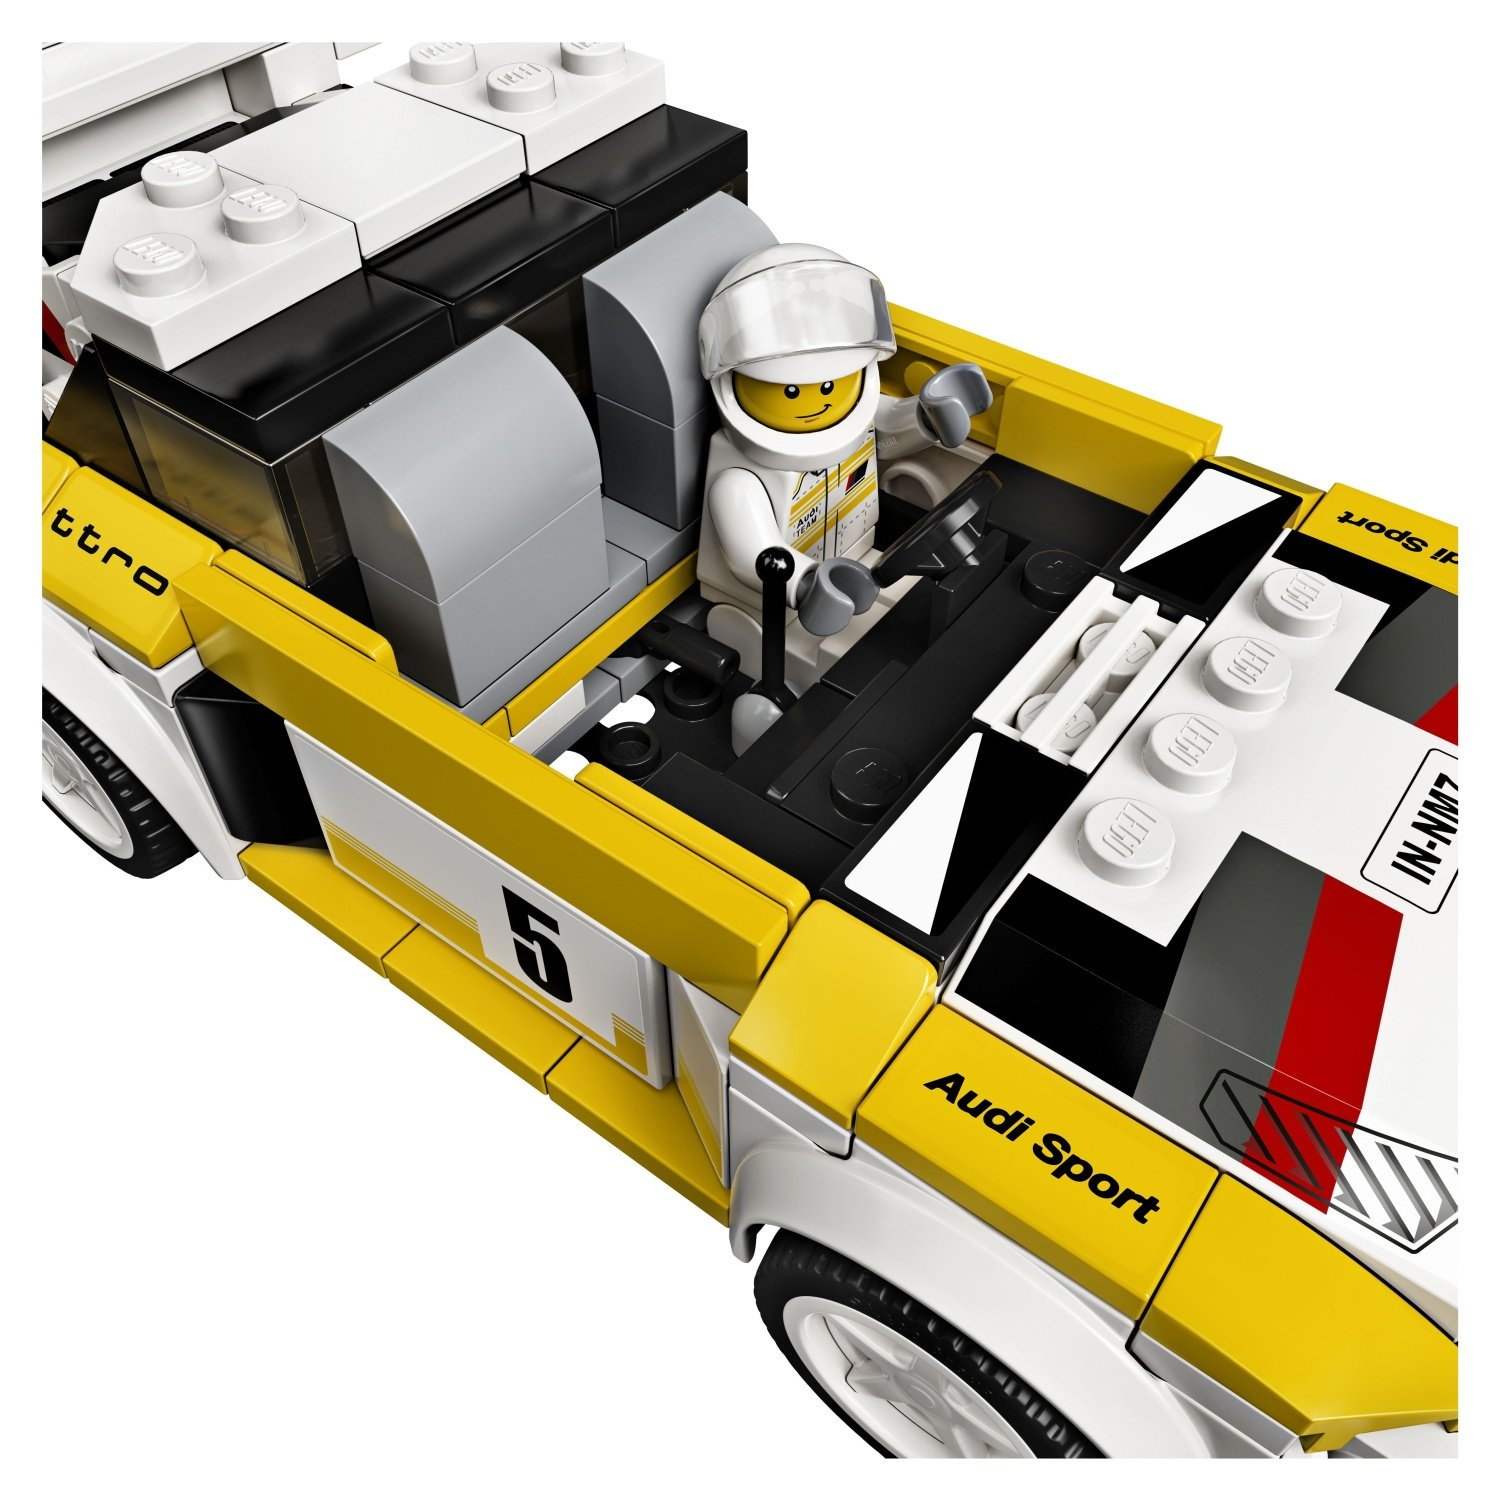 lego-speed-champions-76897-0005   The Brothers Brick   The ...